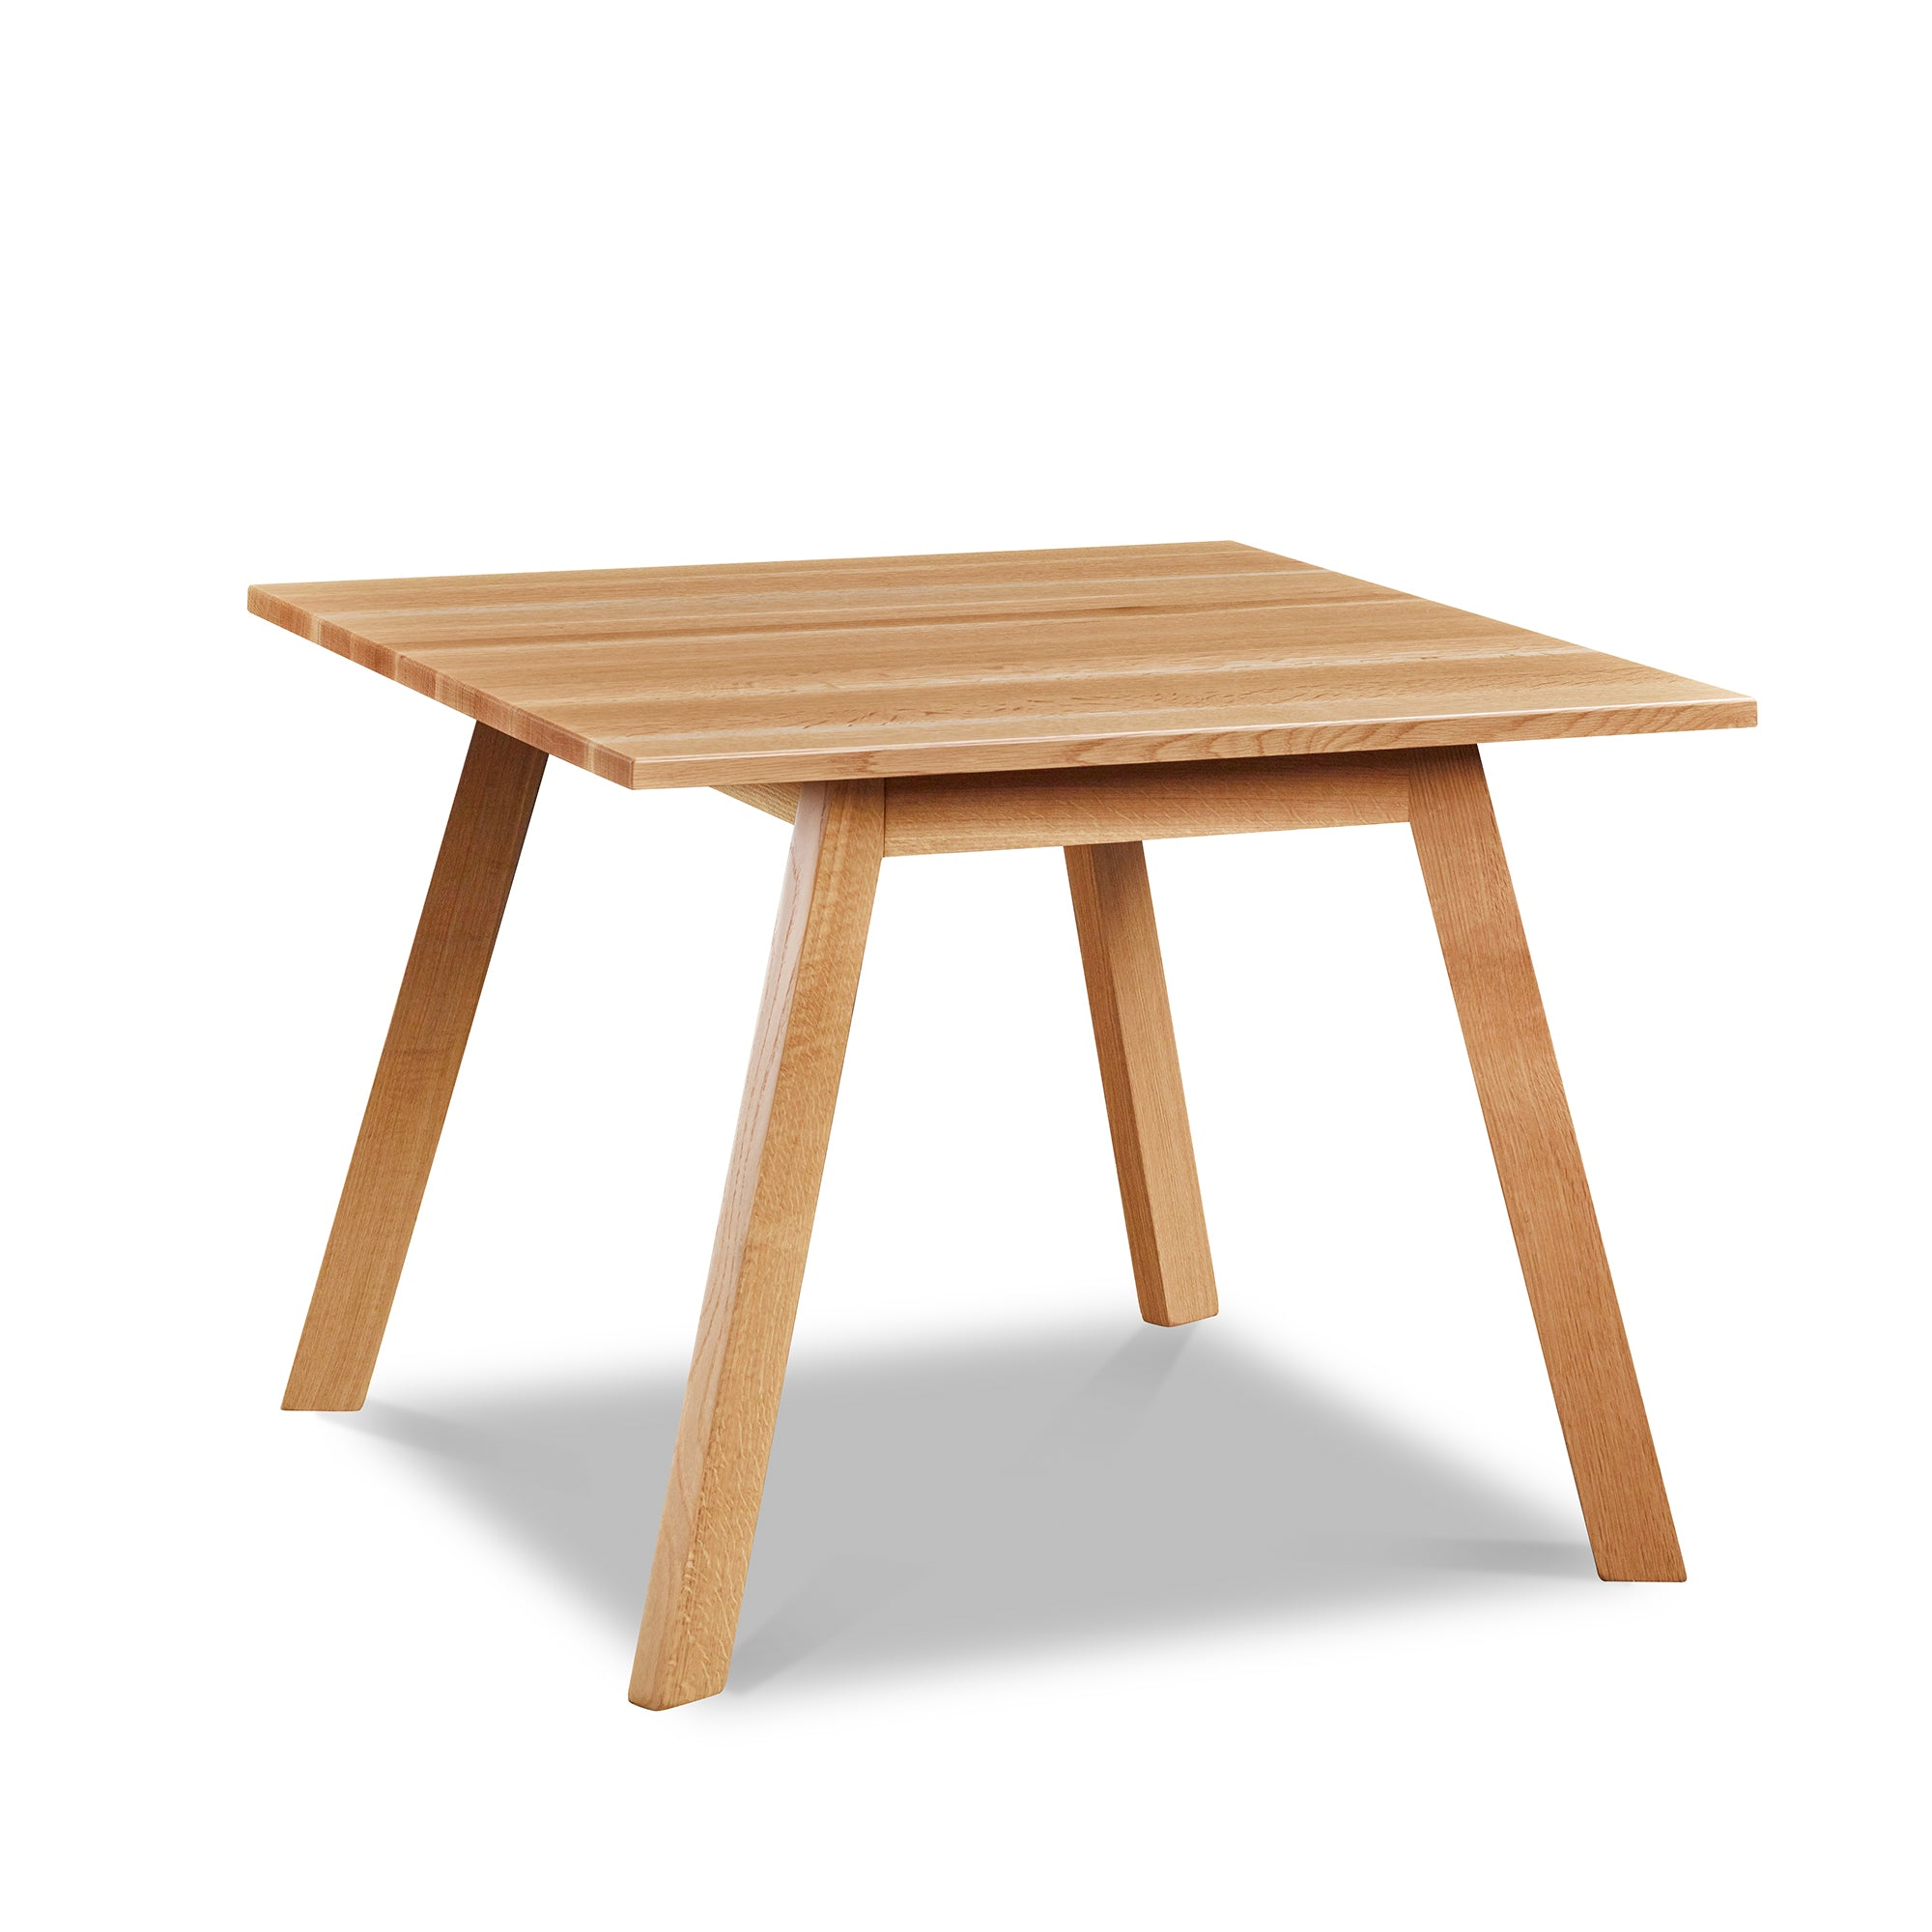 Square modern dining table with angled legs in white oak, from Maine's Chilton Furniture Co.